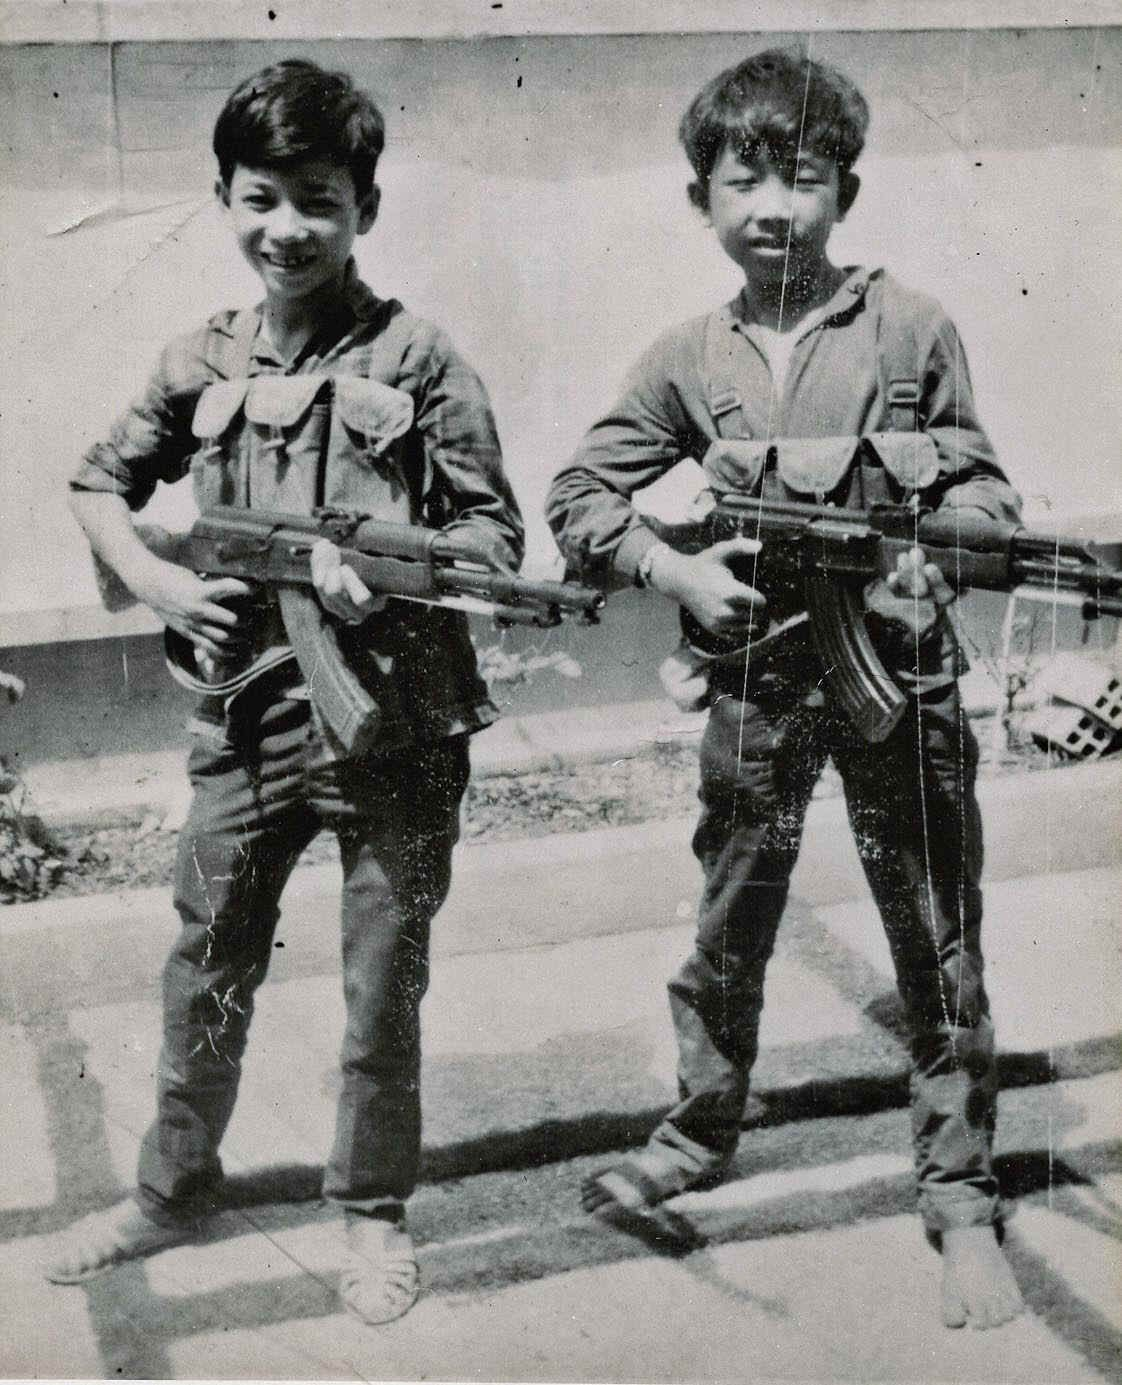 Viet Cong Child Soldiers. With All The Talk About Liberty